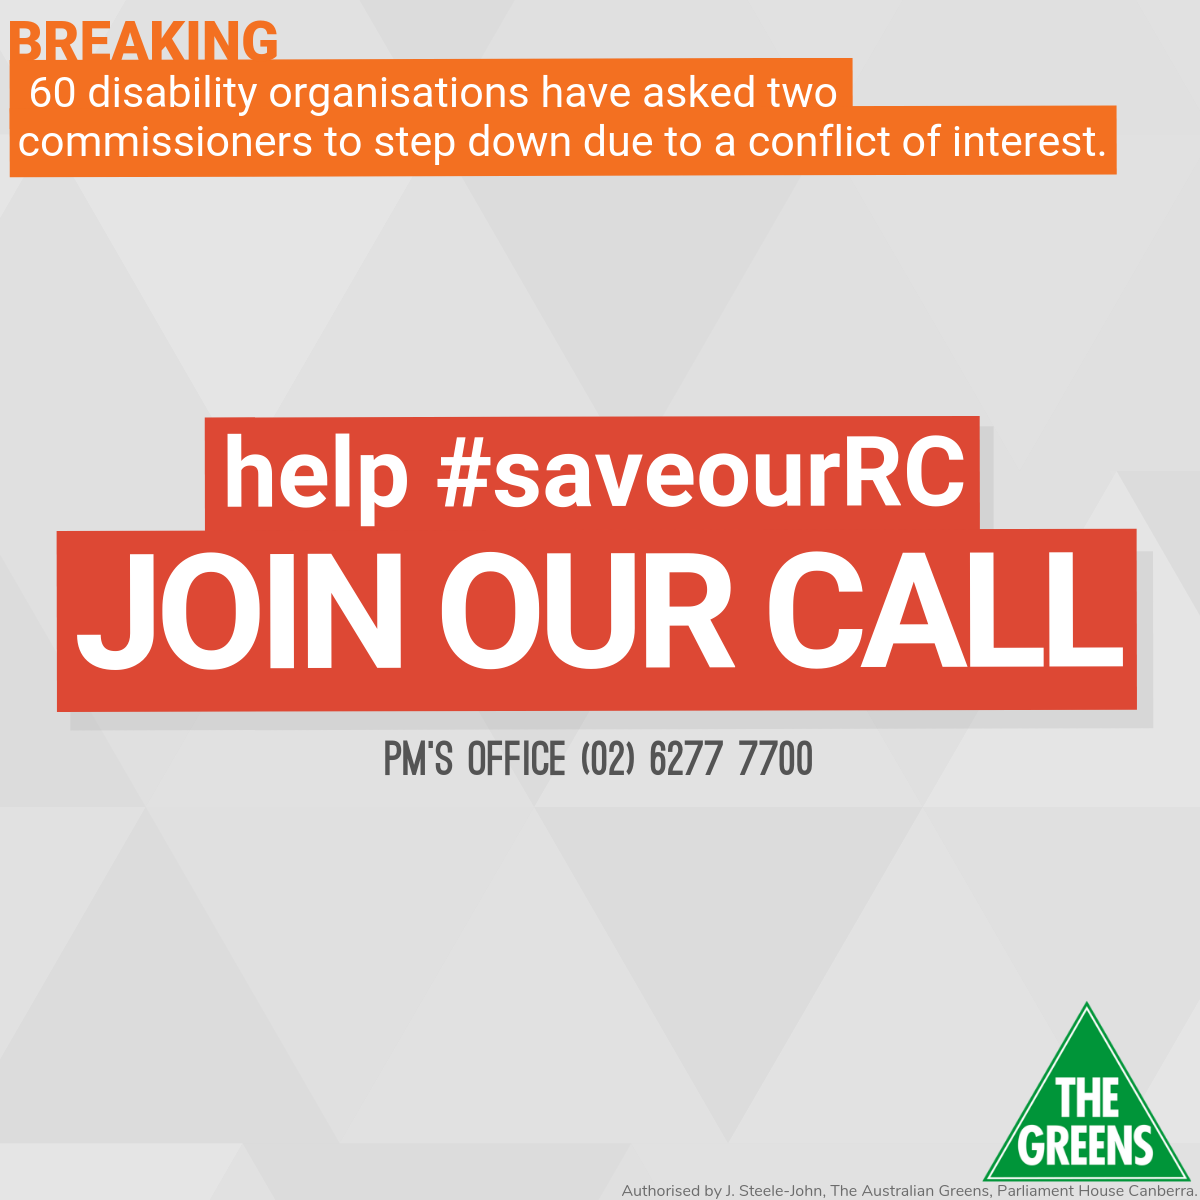 Breaking: 60 disability organisations have asked two of the Commissioners to step down due to a conflict of interest. Help #SaveOurRC. Join our call. PM's office (02) 6277 7700